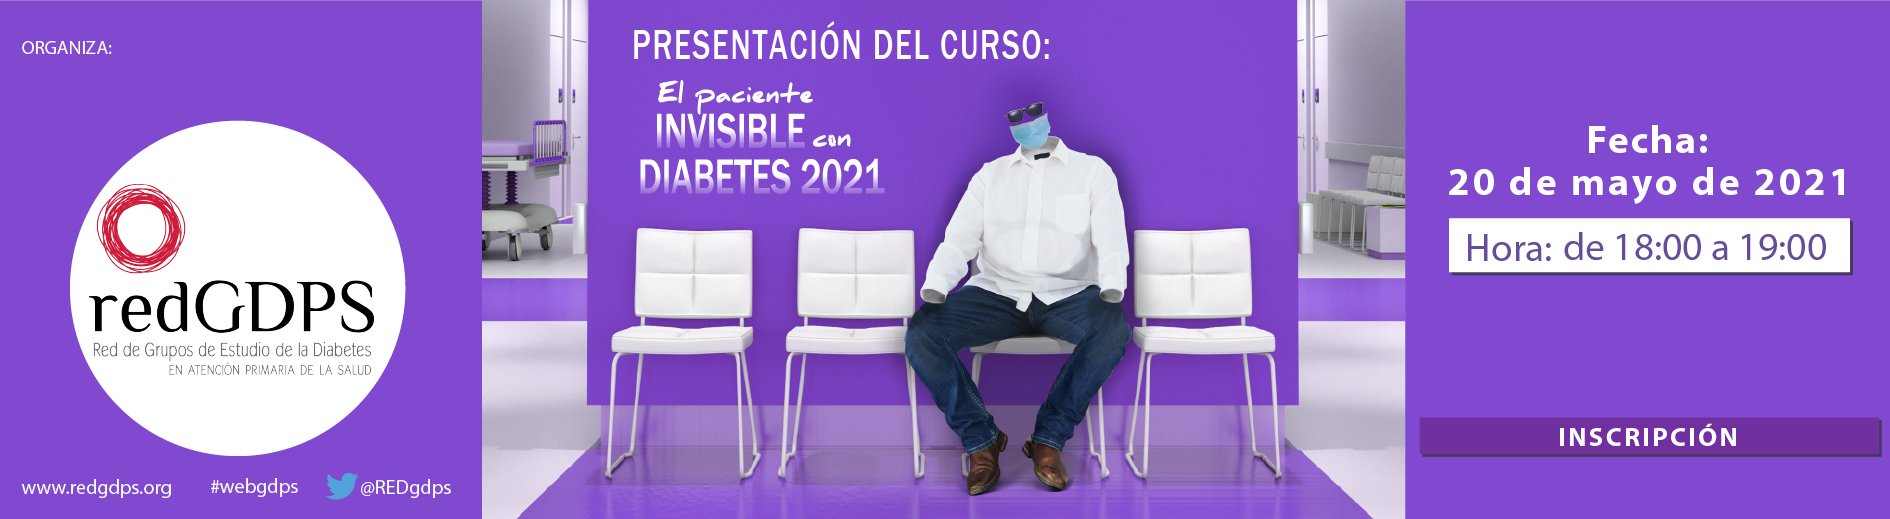 Paciente invisible con diabetes 2021